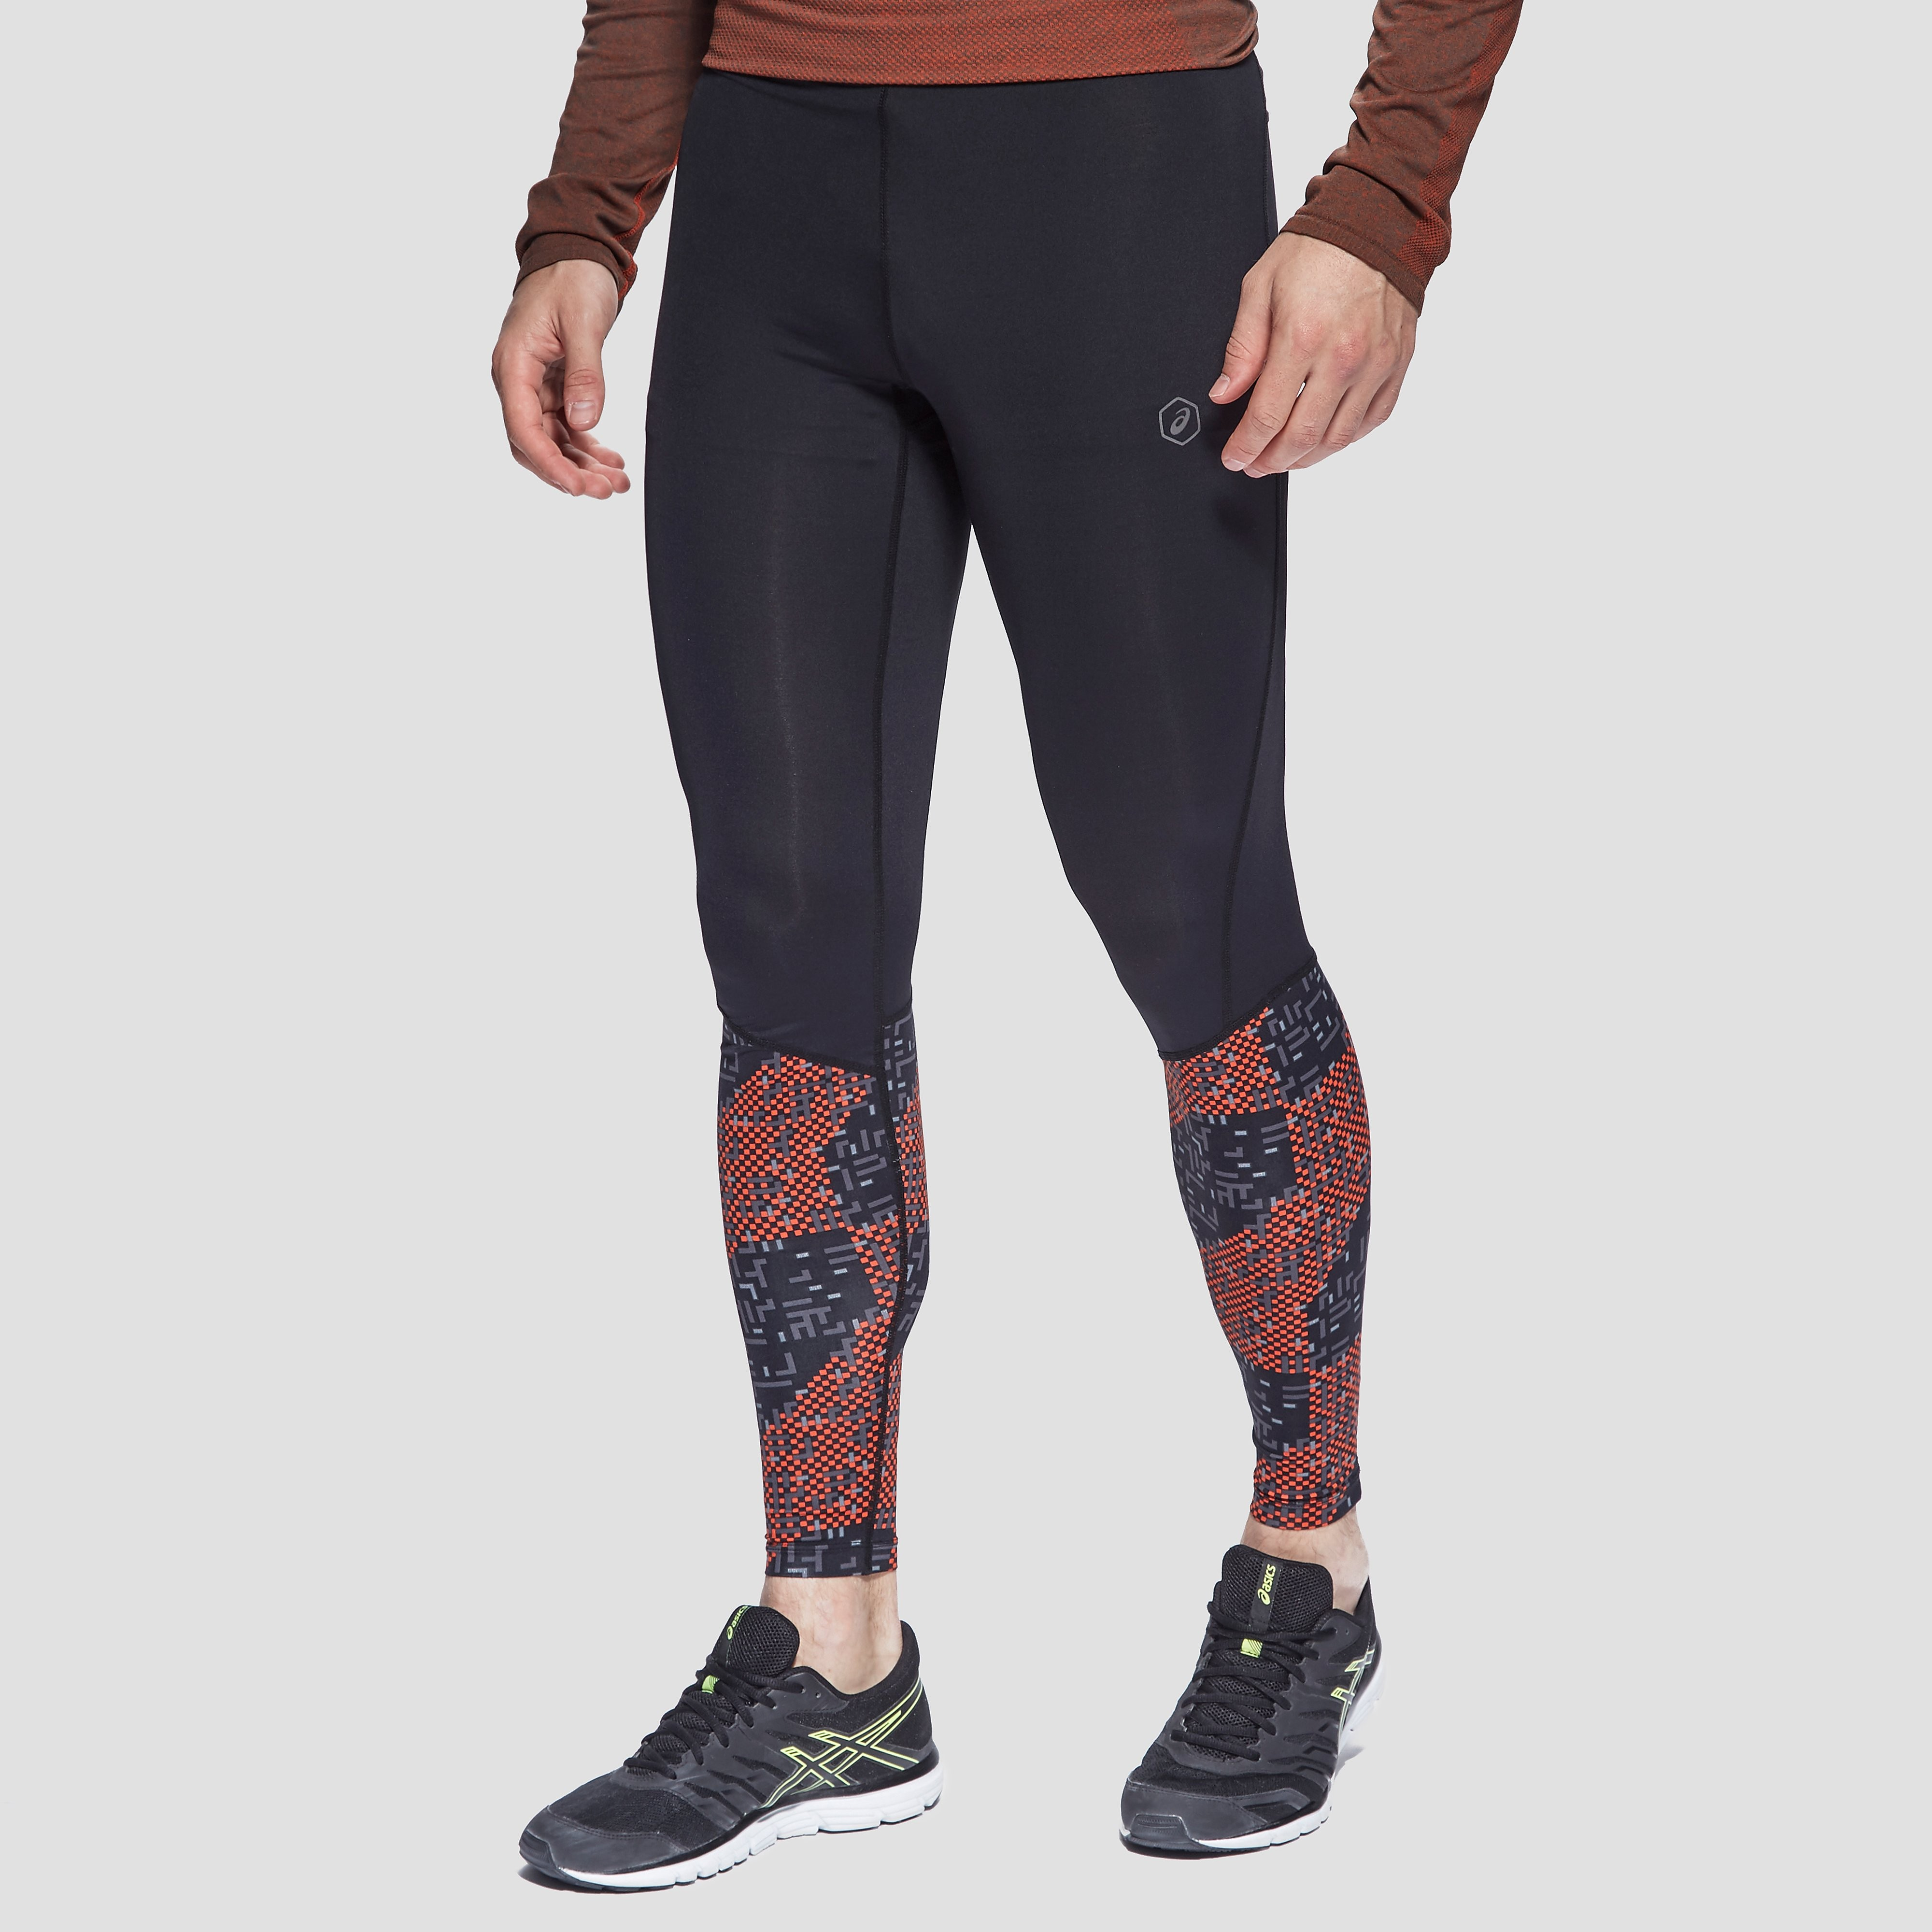 ASICS Race Light Men's Tights